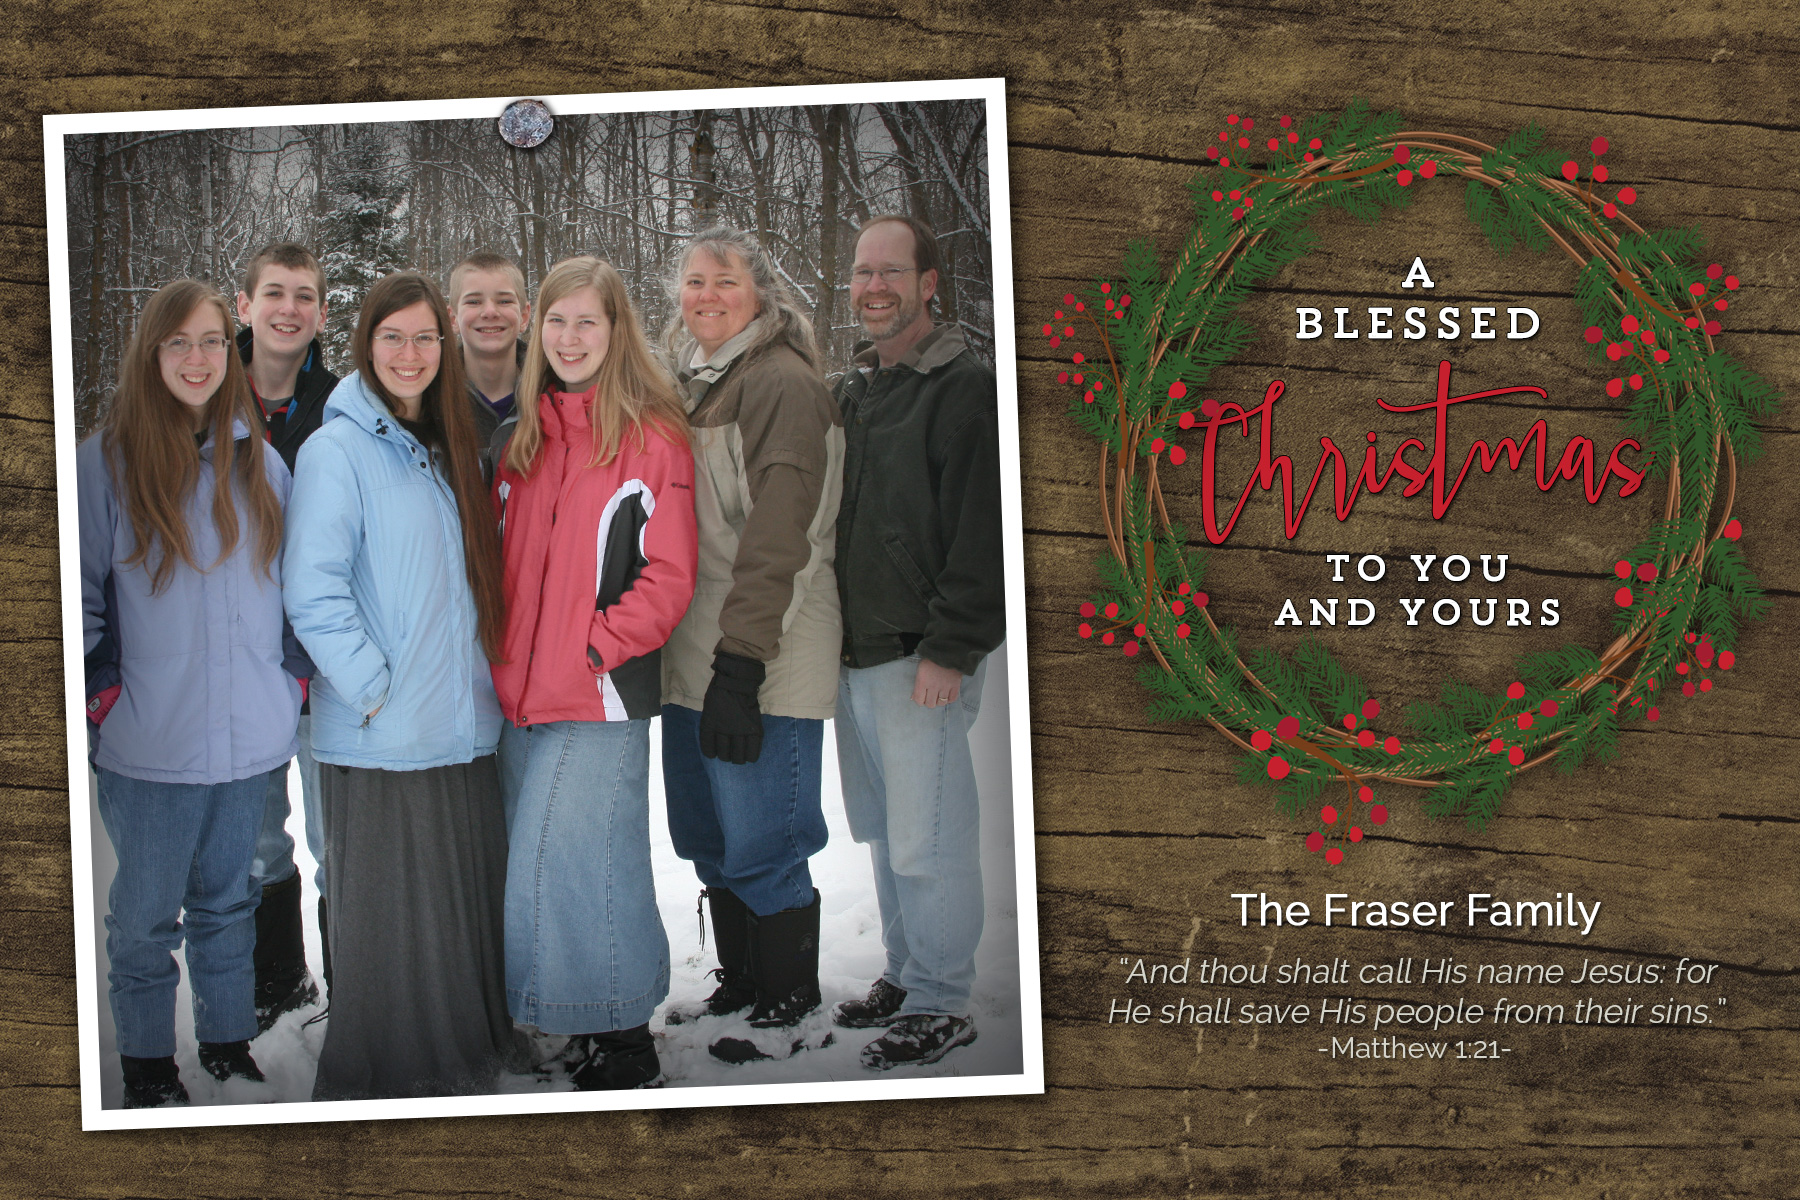 family-Christmas-rustic-4x6-layered